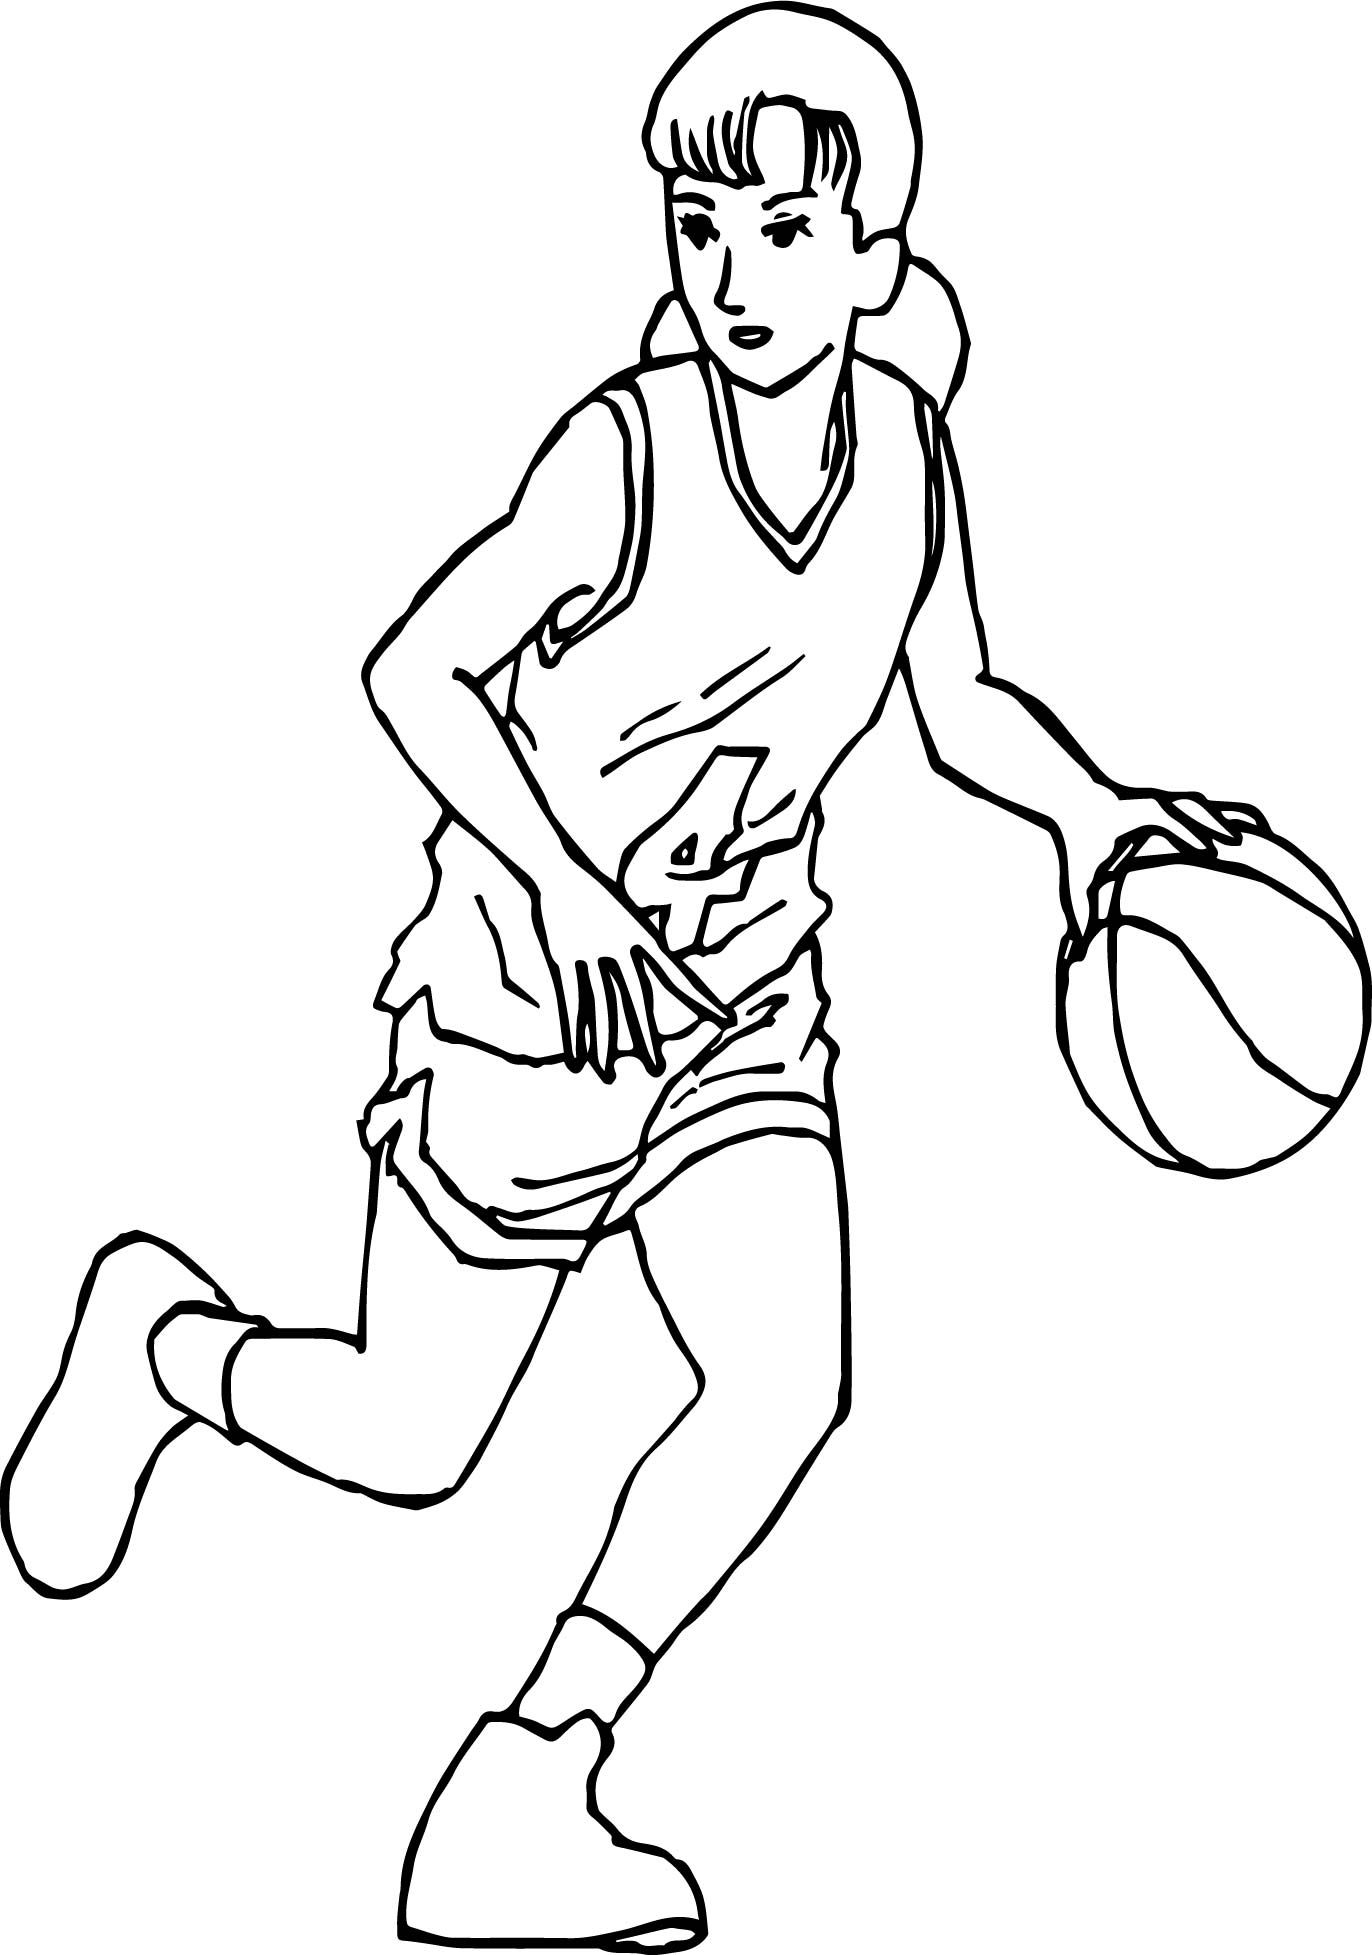 Nice Good Manga Girl Playing Basketball Coloring Page Manga Girl